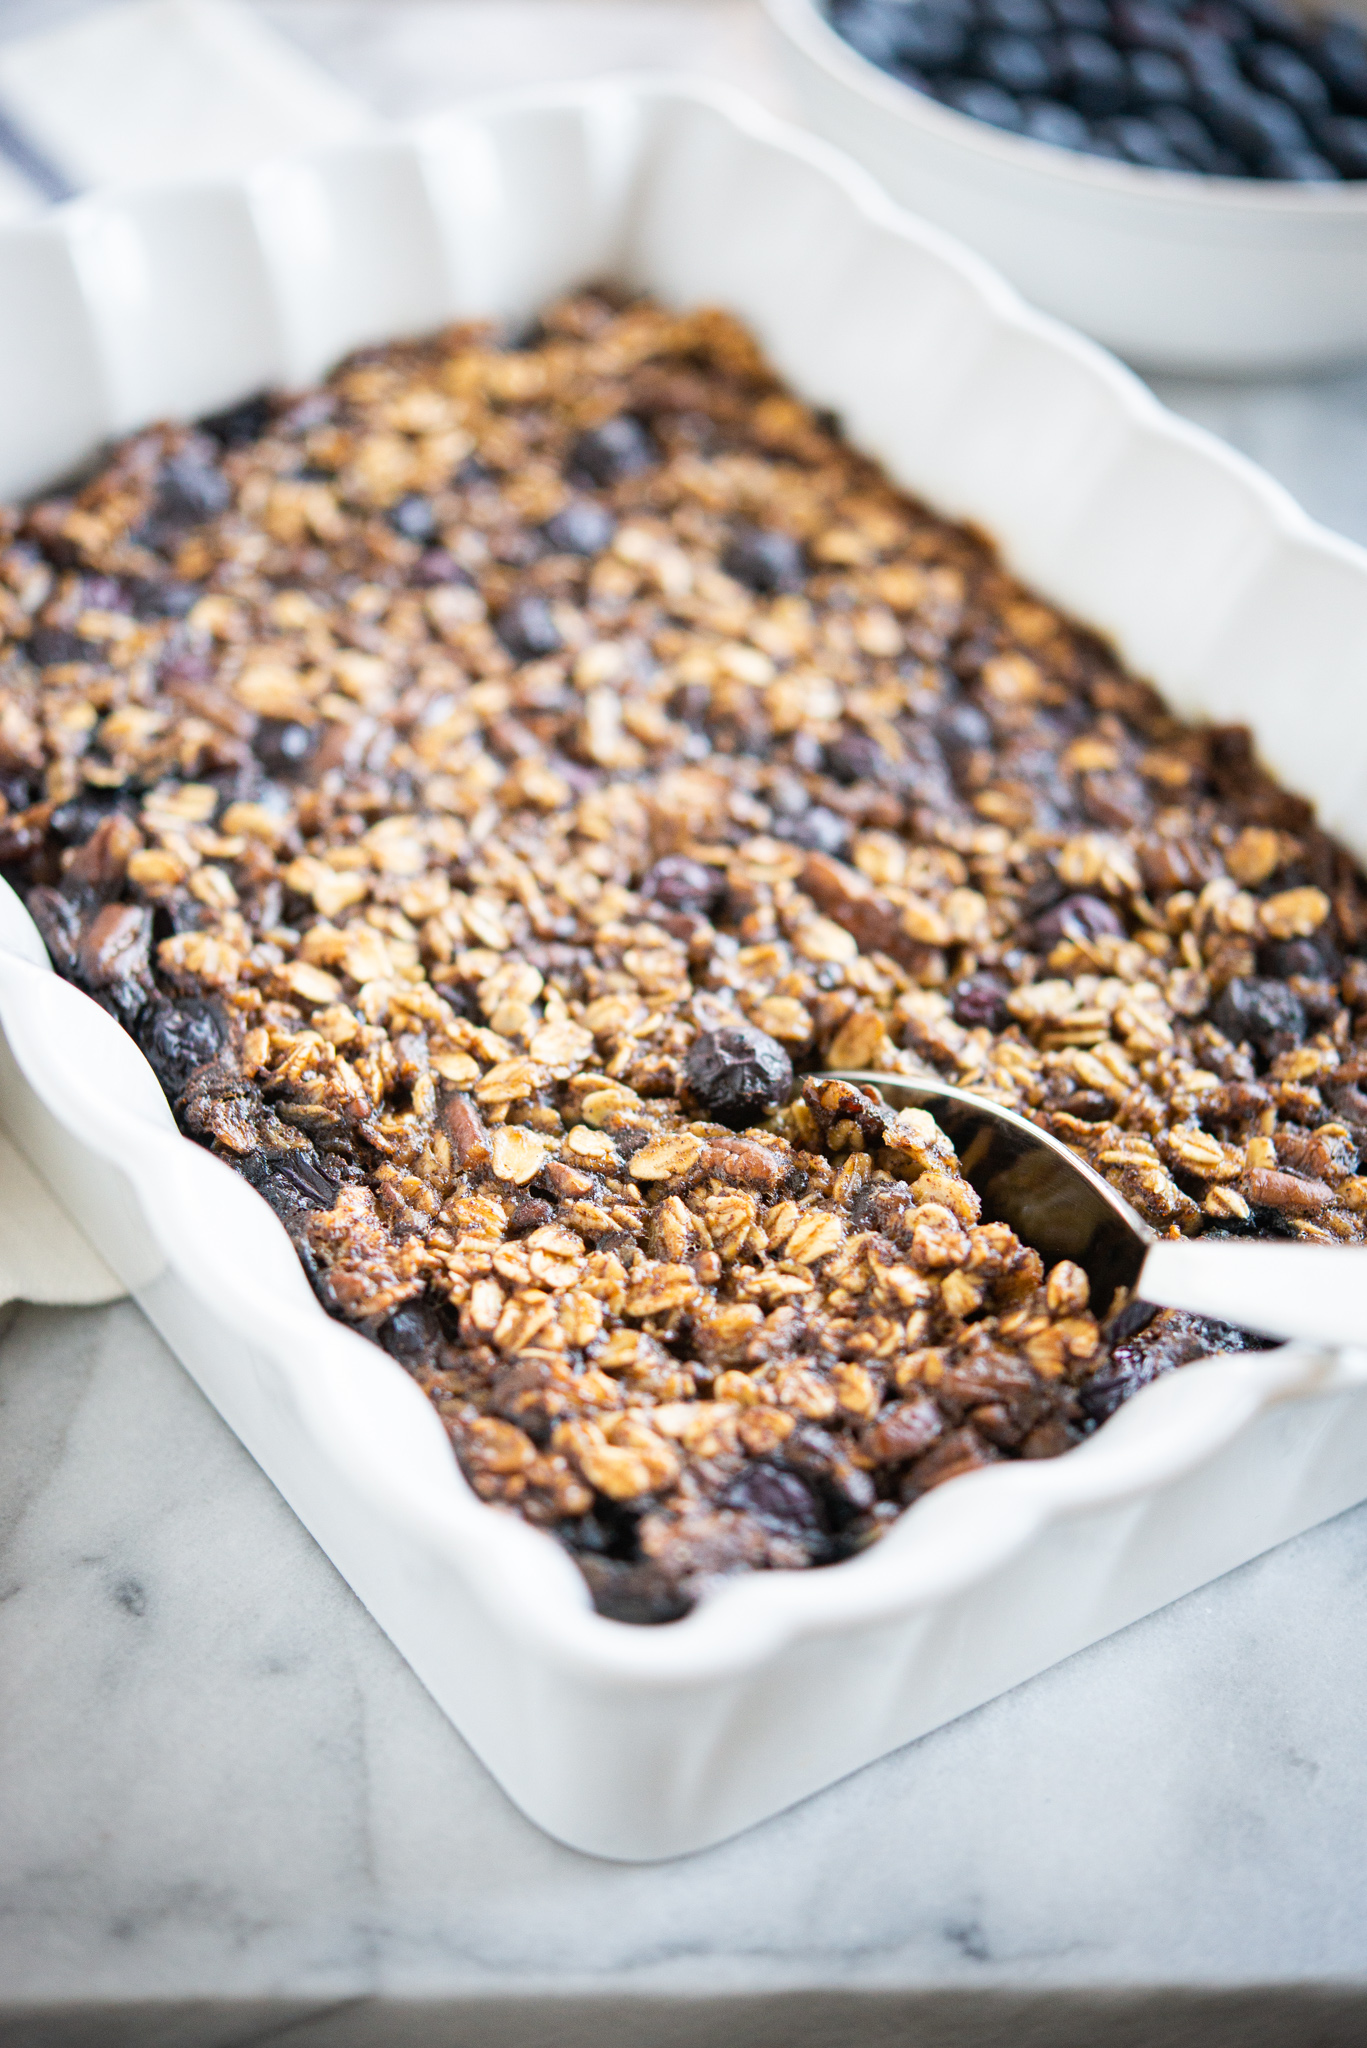 blueberry baked oatmeal in a white rectangular baking dish with a spoon in it on a marble surface